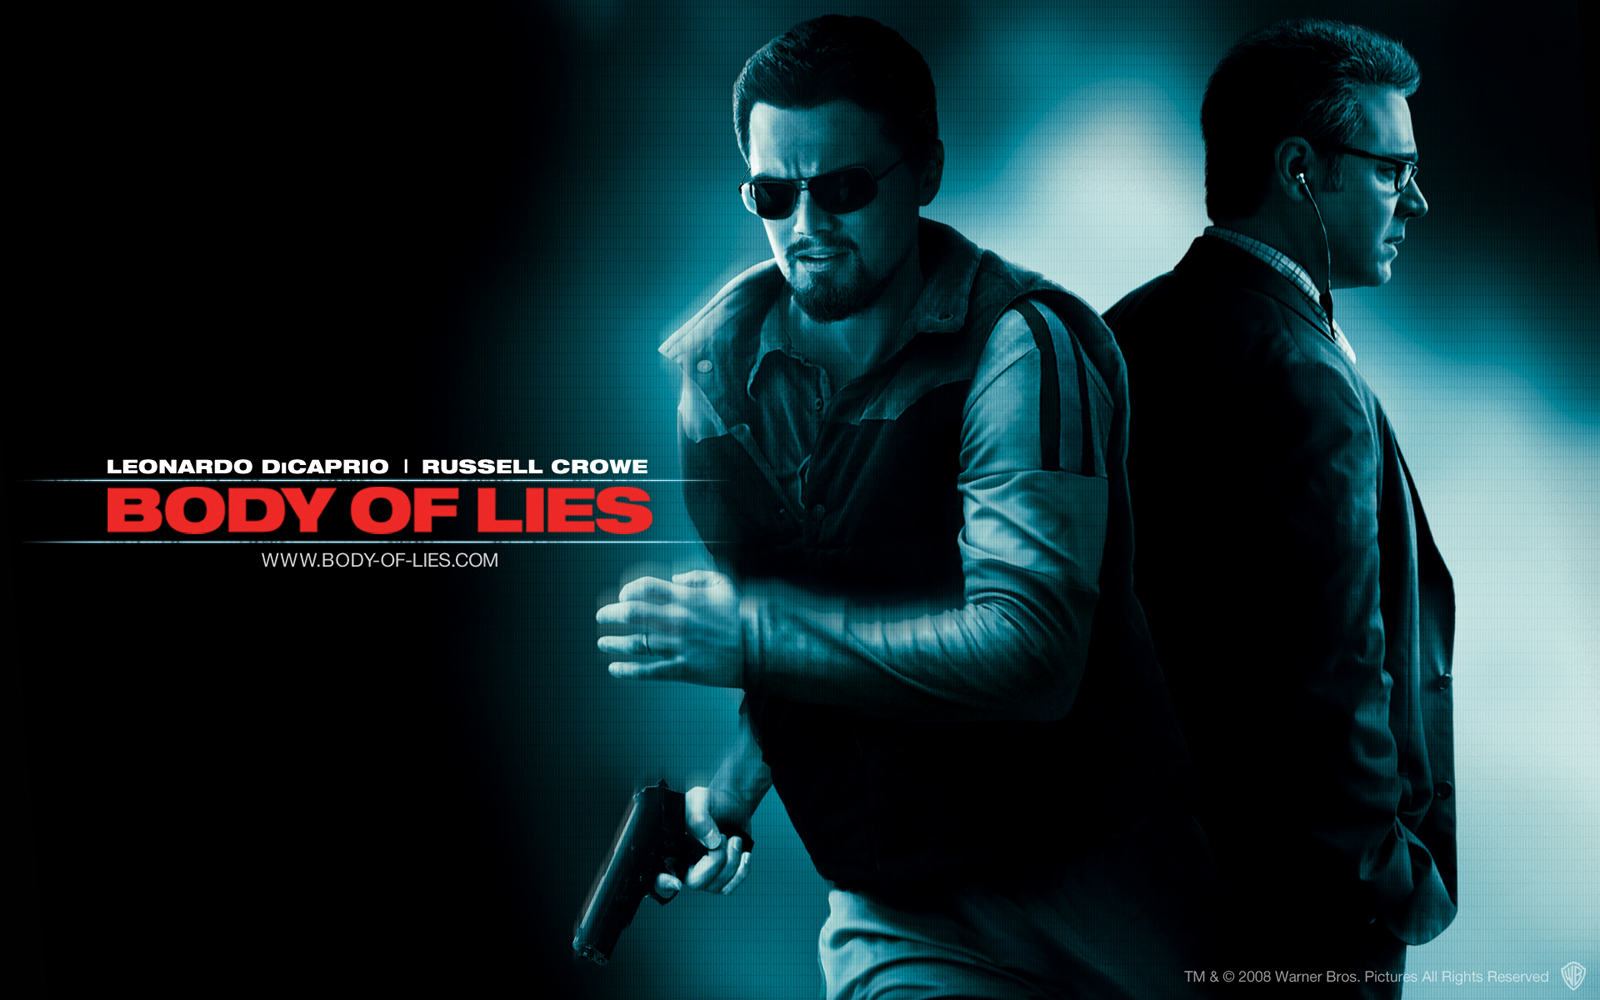 body of lies Body of lies cast list, listed alphabetically with photos when available this list of body of lies actors includes any body of lies actresses and all other actors from the film you can view additional information about each body of lies actor on this list, such as when and where they were born to find out more about a.